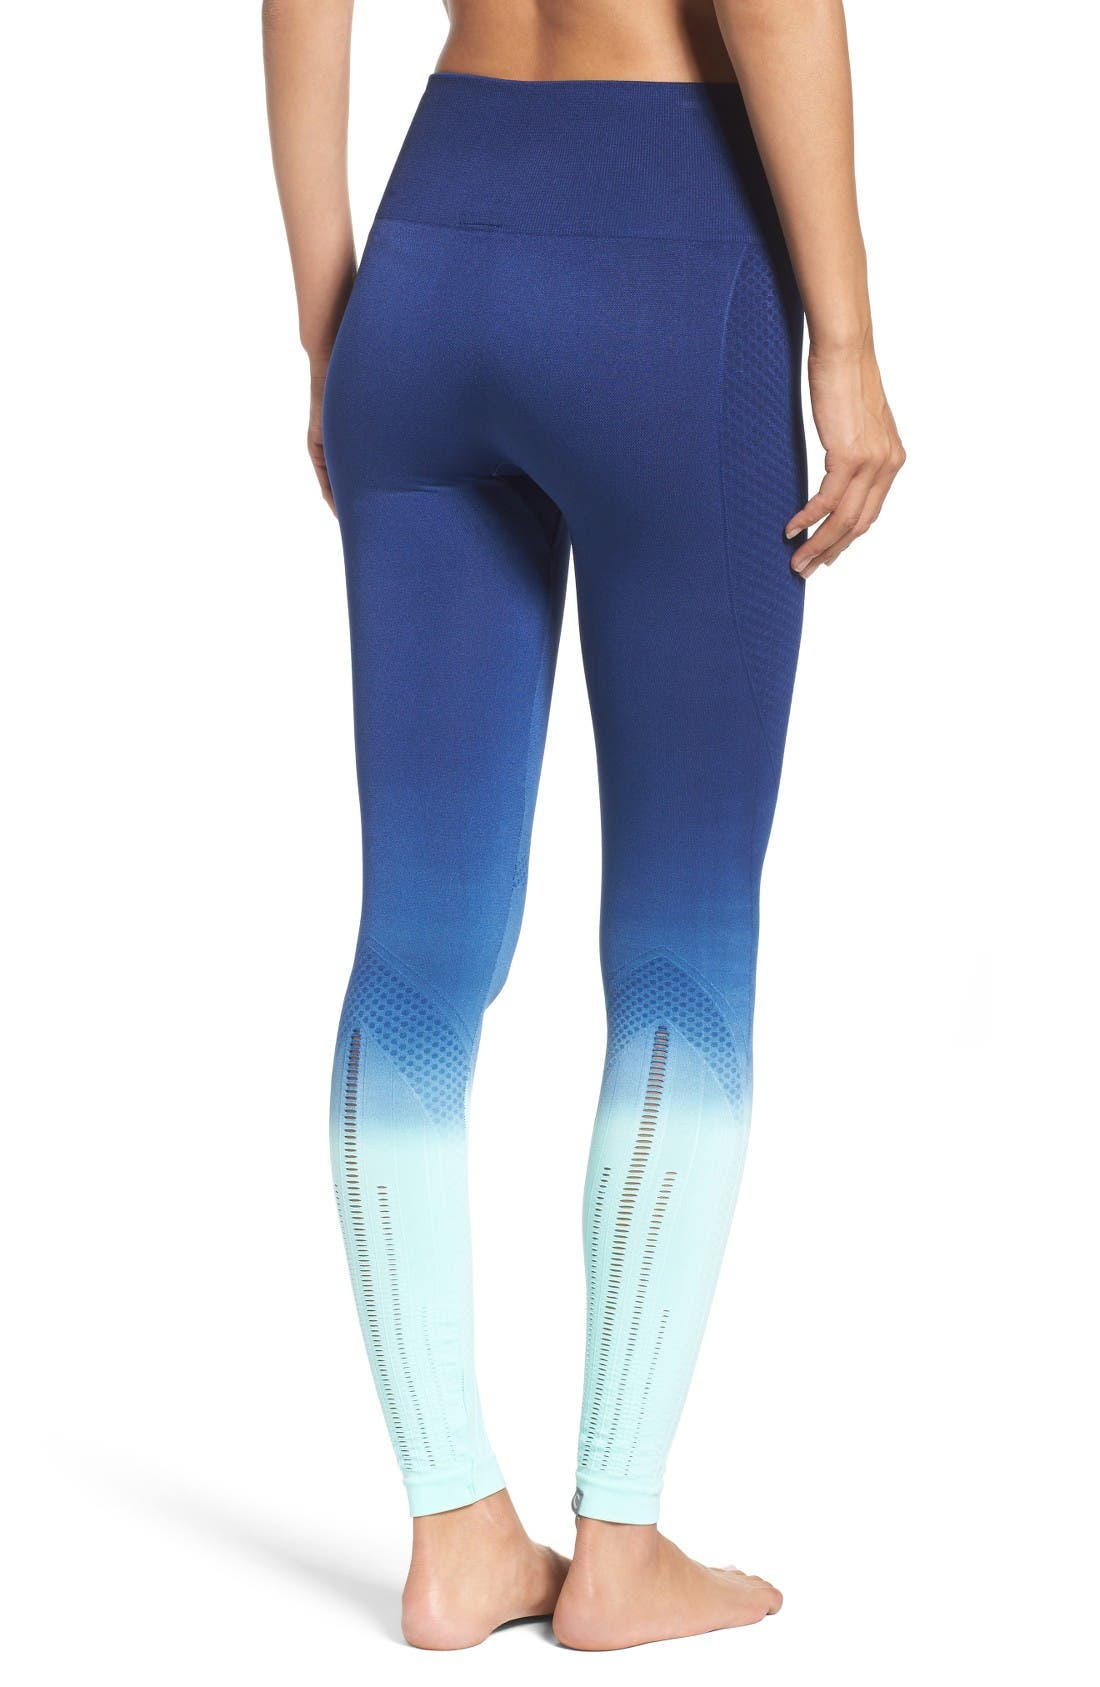 Alternate Image 2  - Climawear Set the Pace High Waist Leggings